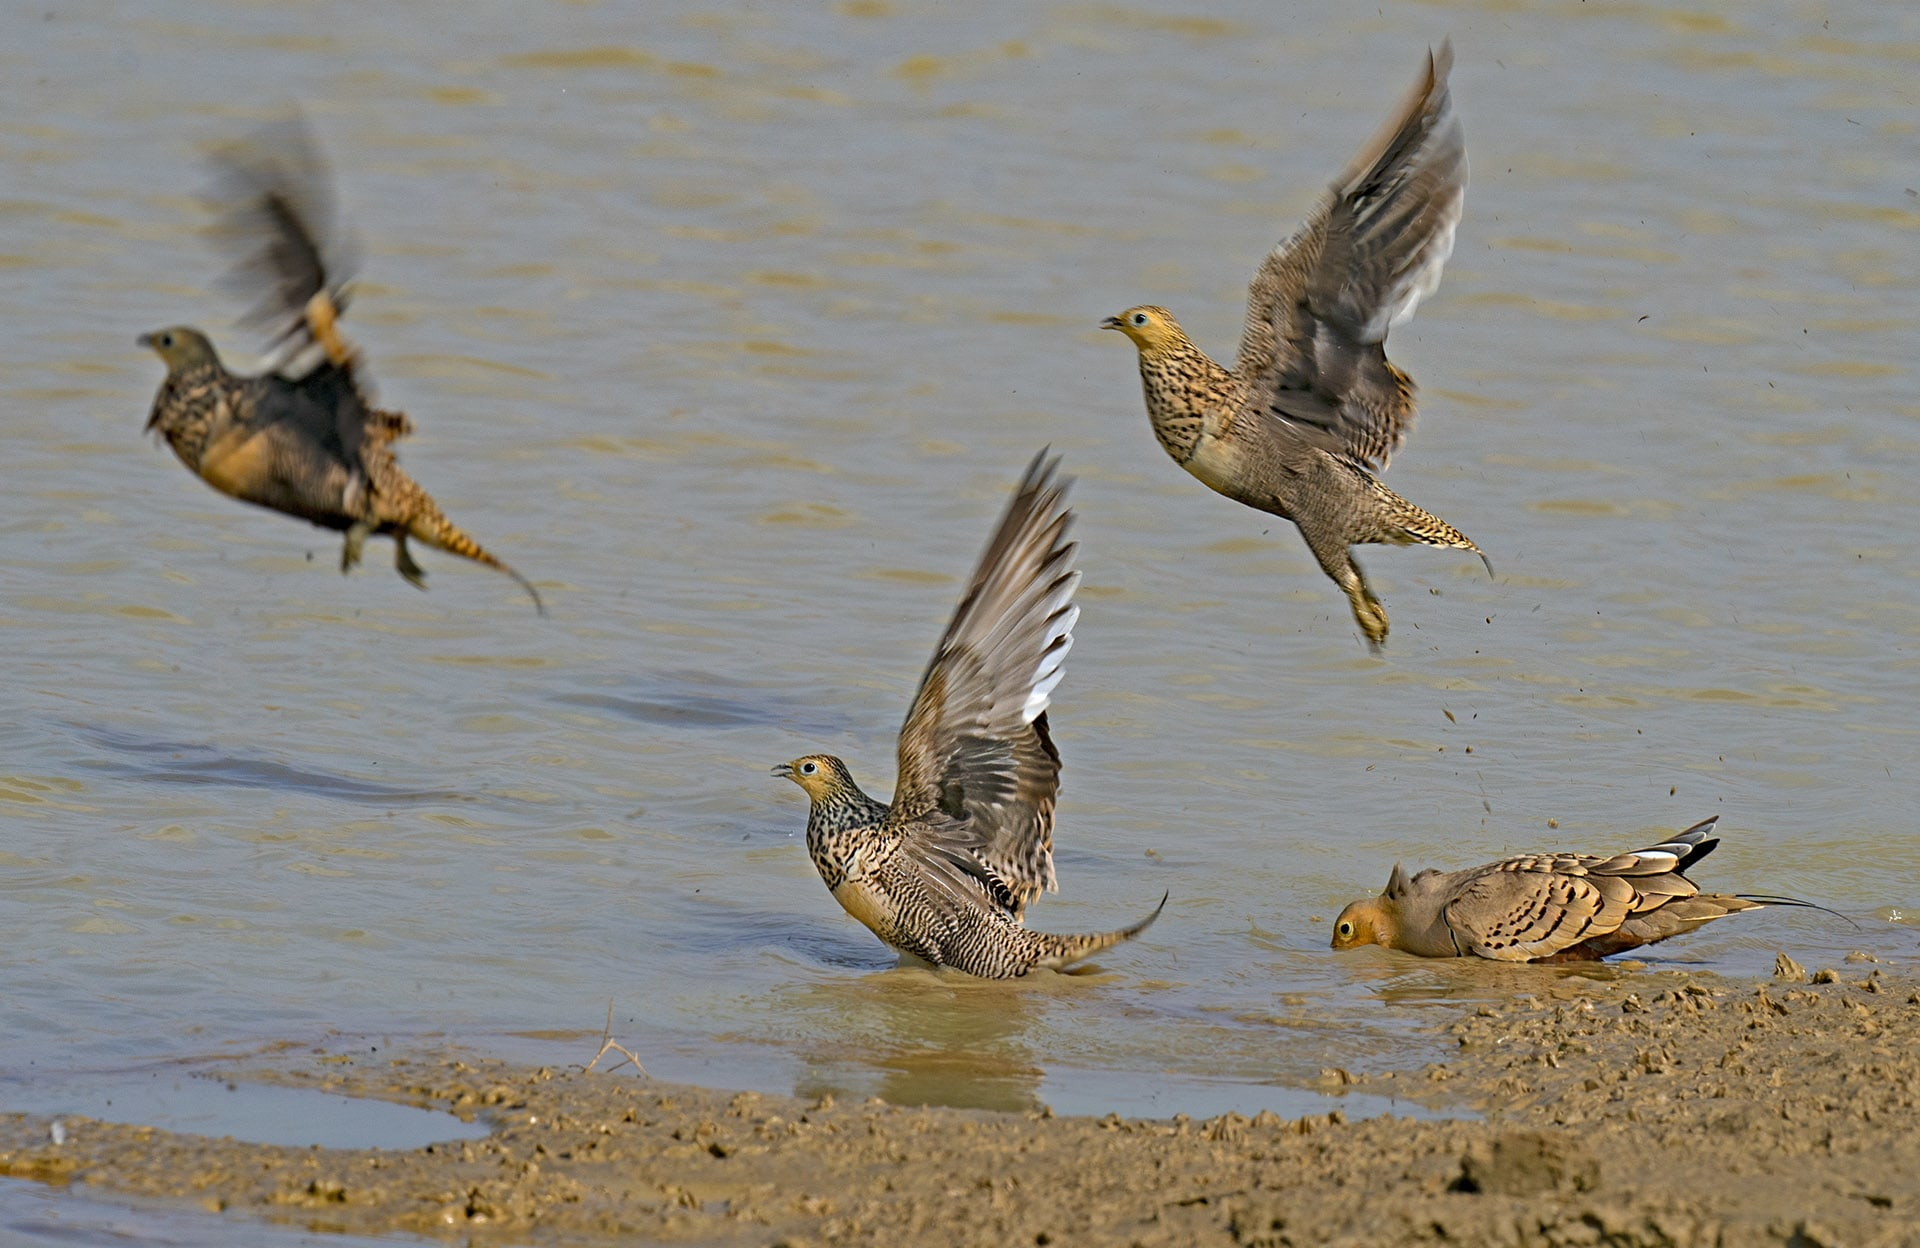 Found across India except in the Northeast, chestnut-bellied sandgrouse prefers habitats with open areas. During the dry season, large flocks can be observed around waterbodies.  Photo: Dhritiman Mukherjee